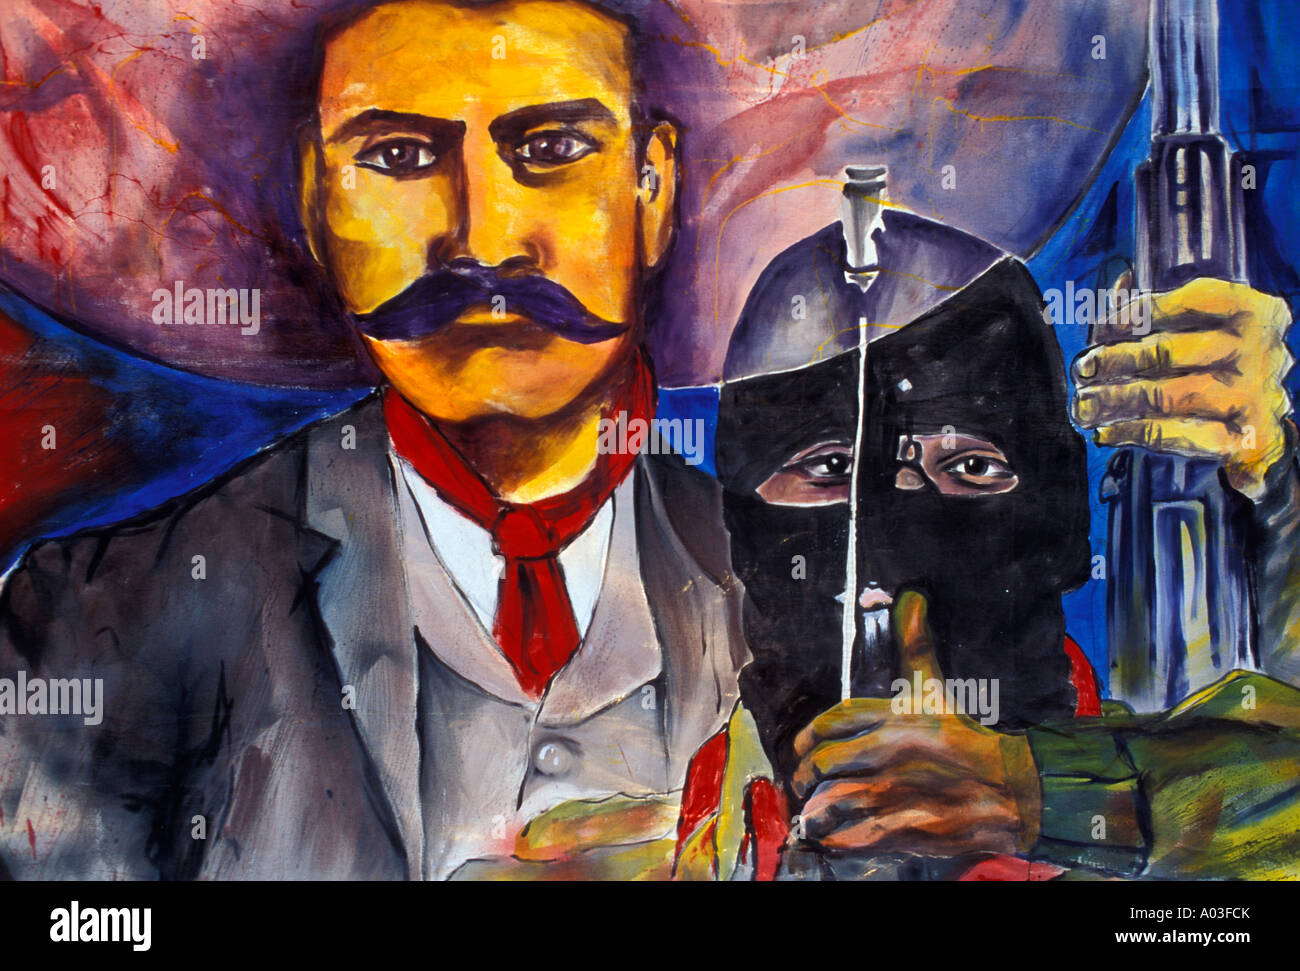 Stock image of a mexican mural with emiliano zapata and for Mural zapatista